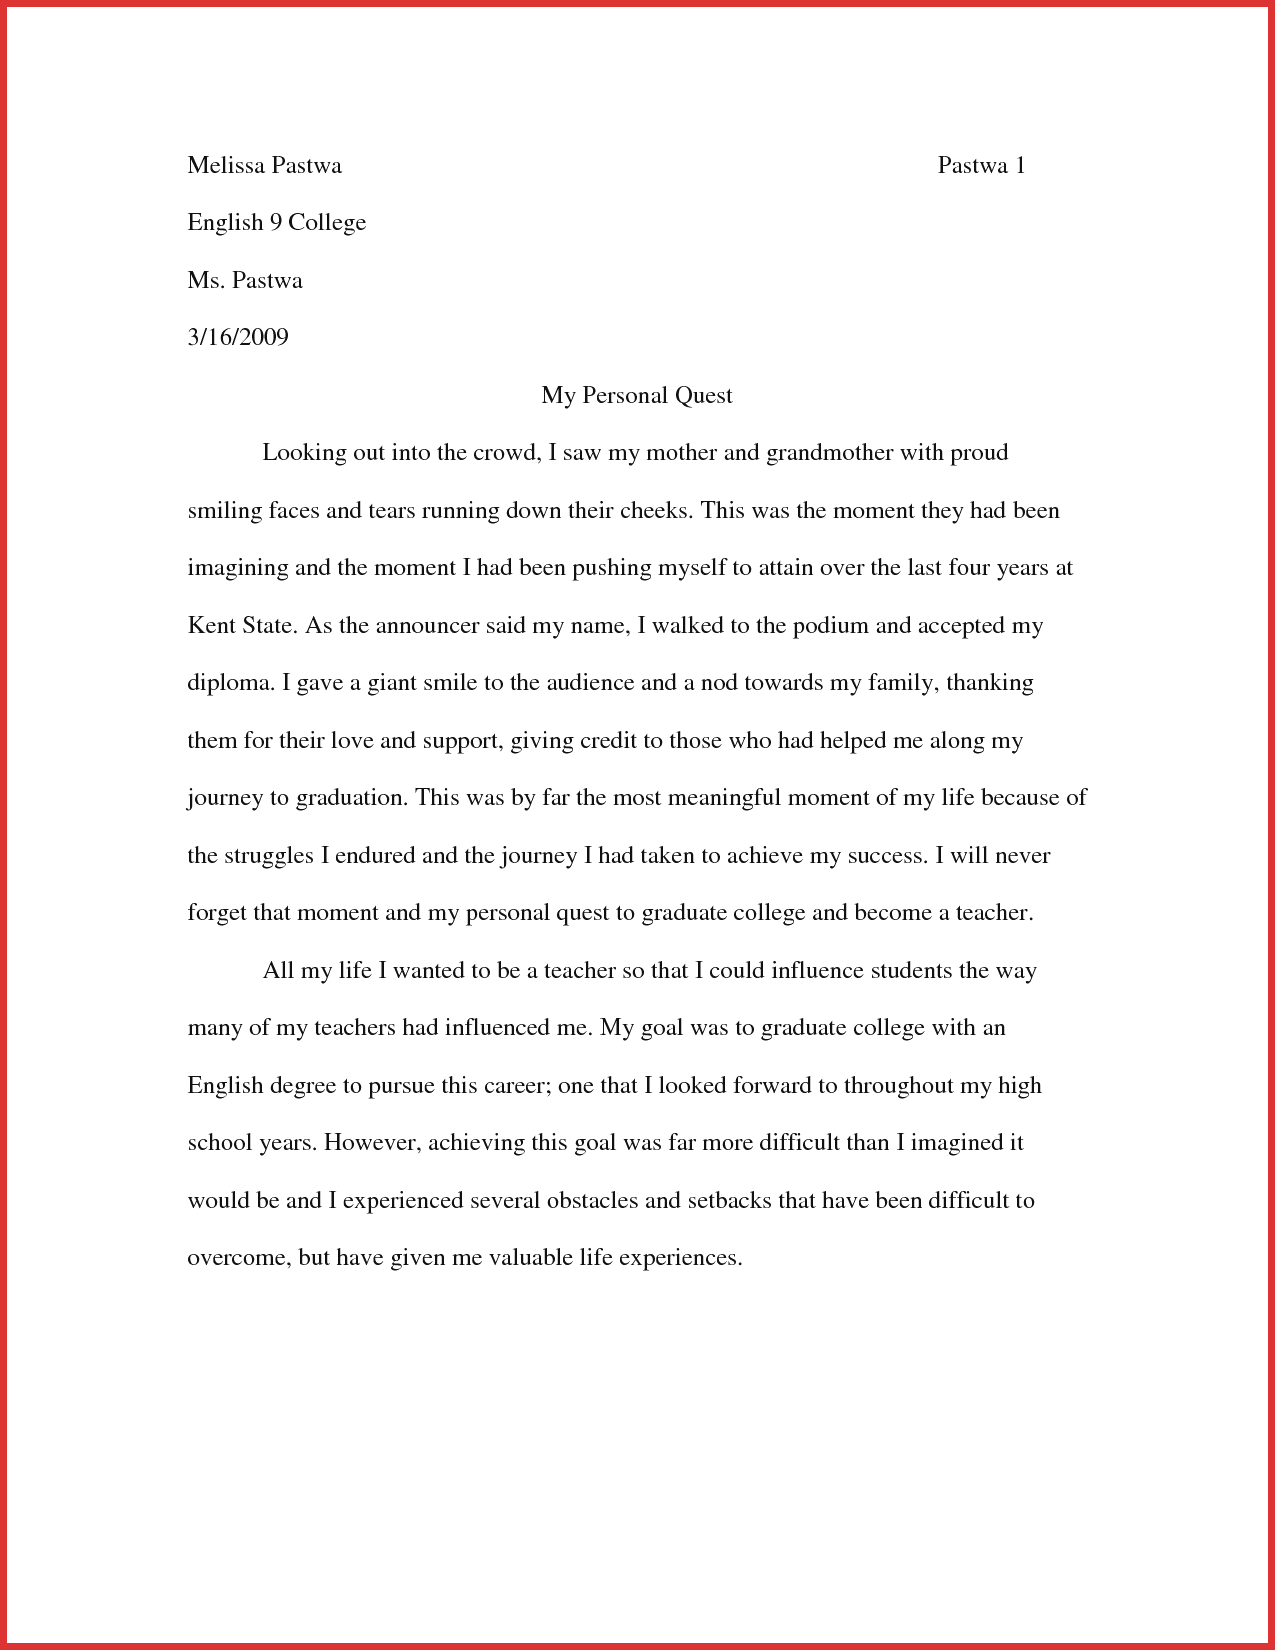 college essay examples best english essay english essay story what is a thesis in an essay thesis also example proposal essay proposal essay topics ideas